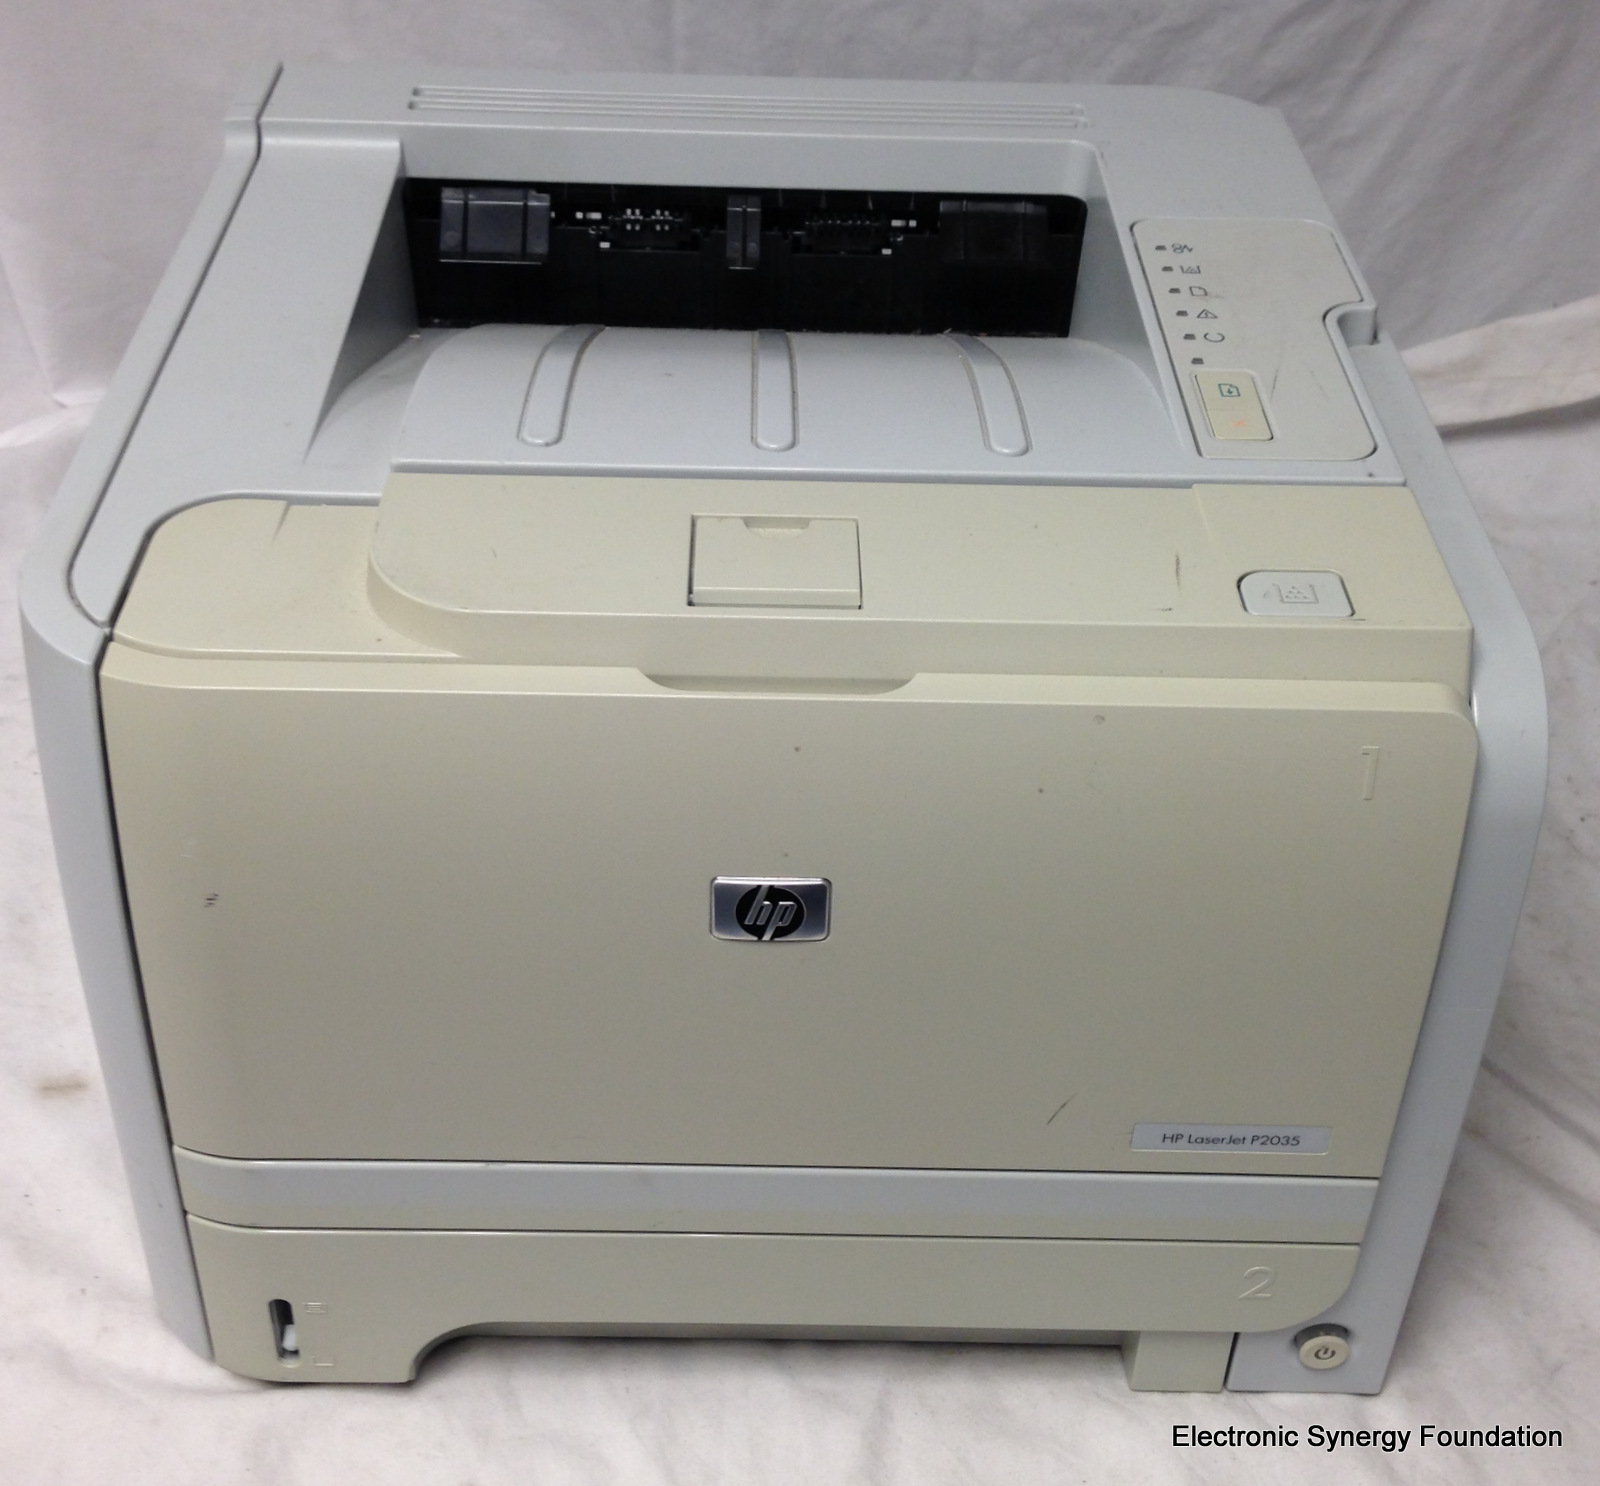 Hp laserjet p2035 monochrome printer Download + Paid Version